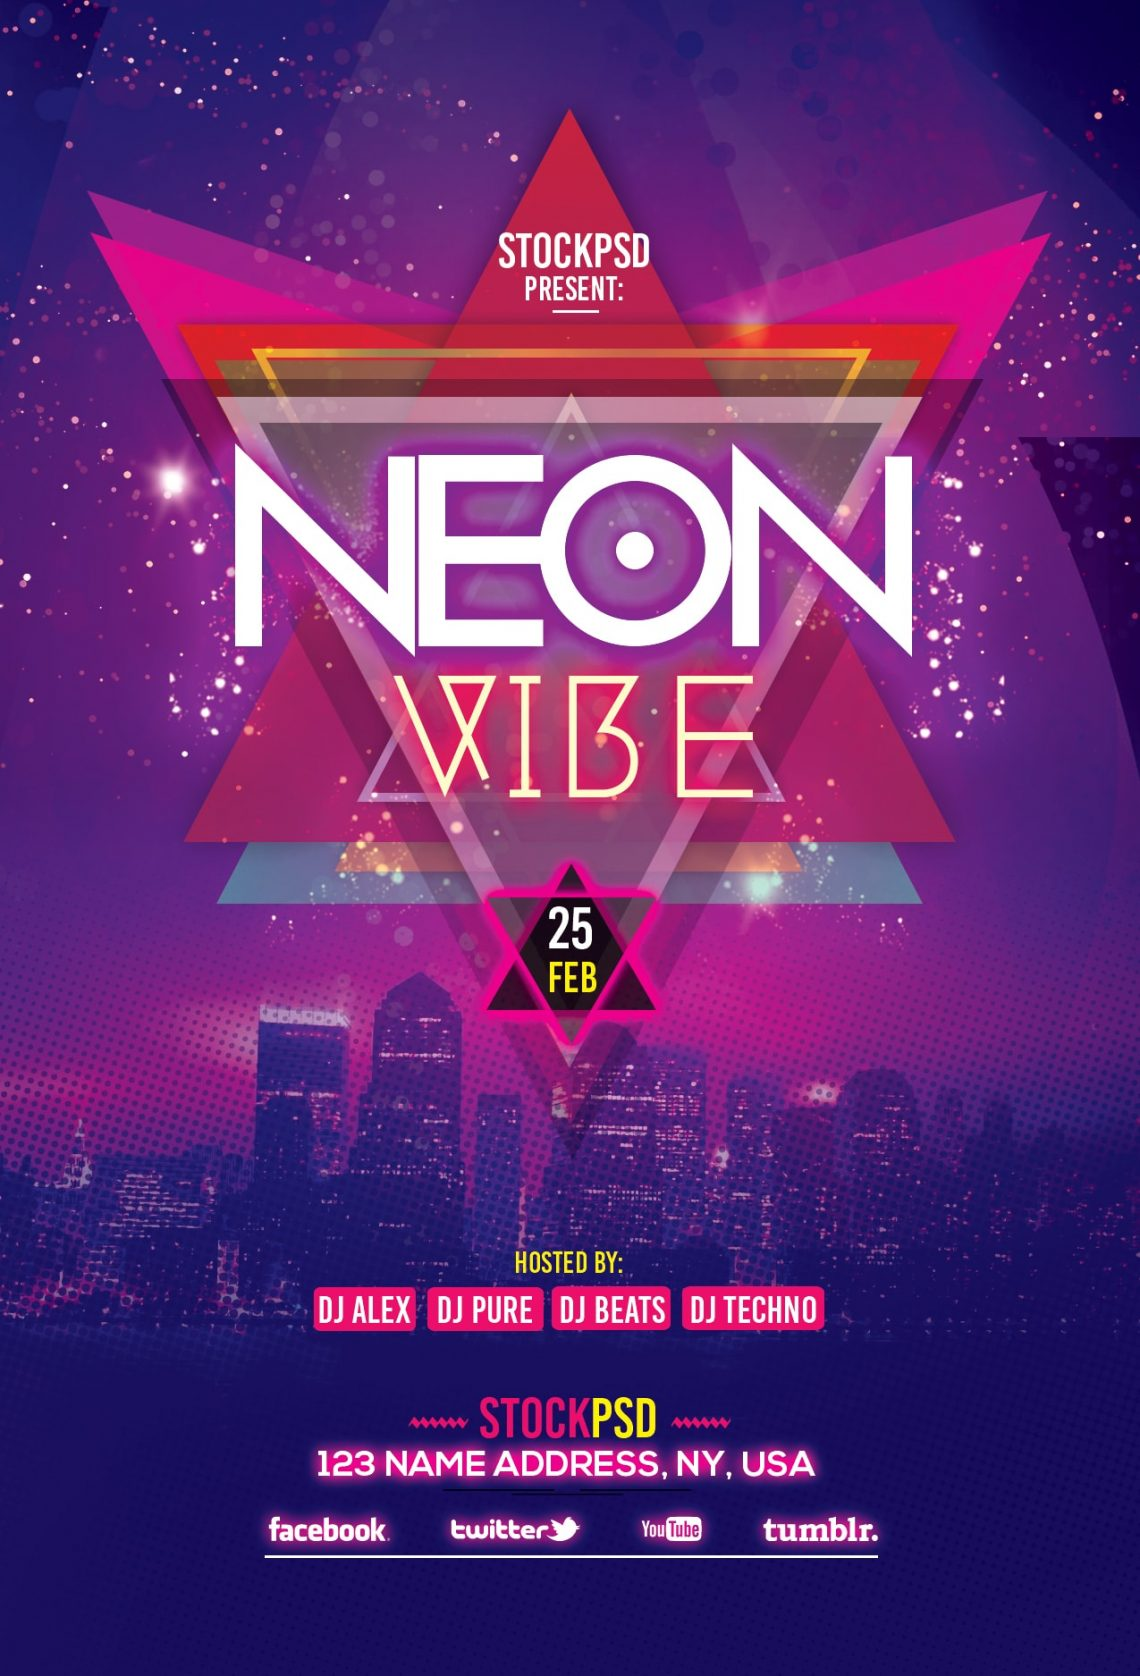 Neon Vibe – Download Free PSD Flyer Template - Pixelsdesign net